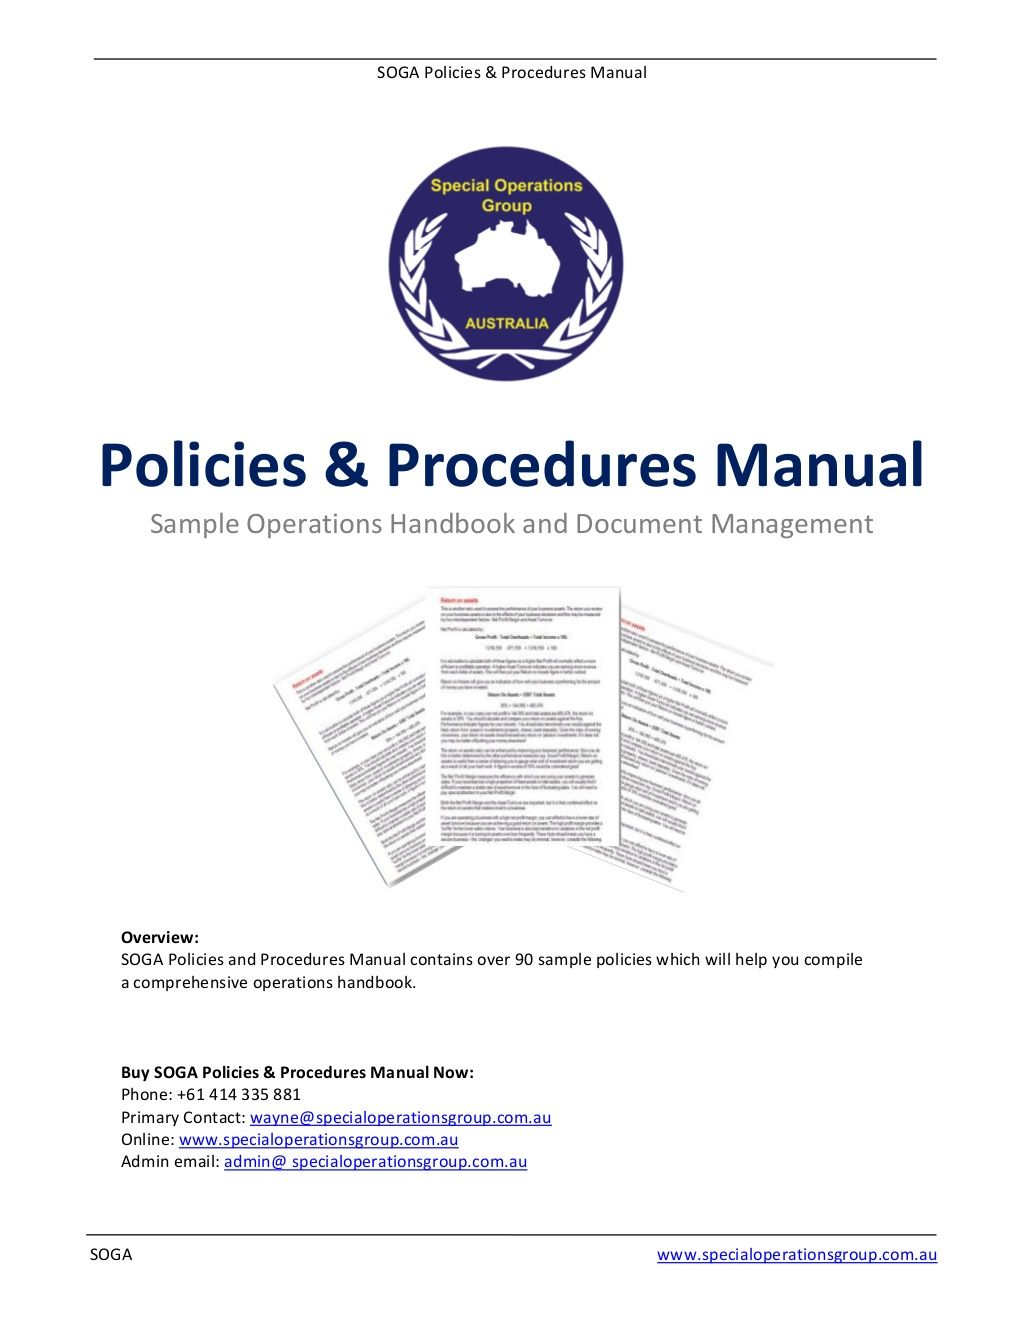 Soga Policies Procedures Manual Software Sample By Wayne Carney